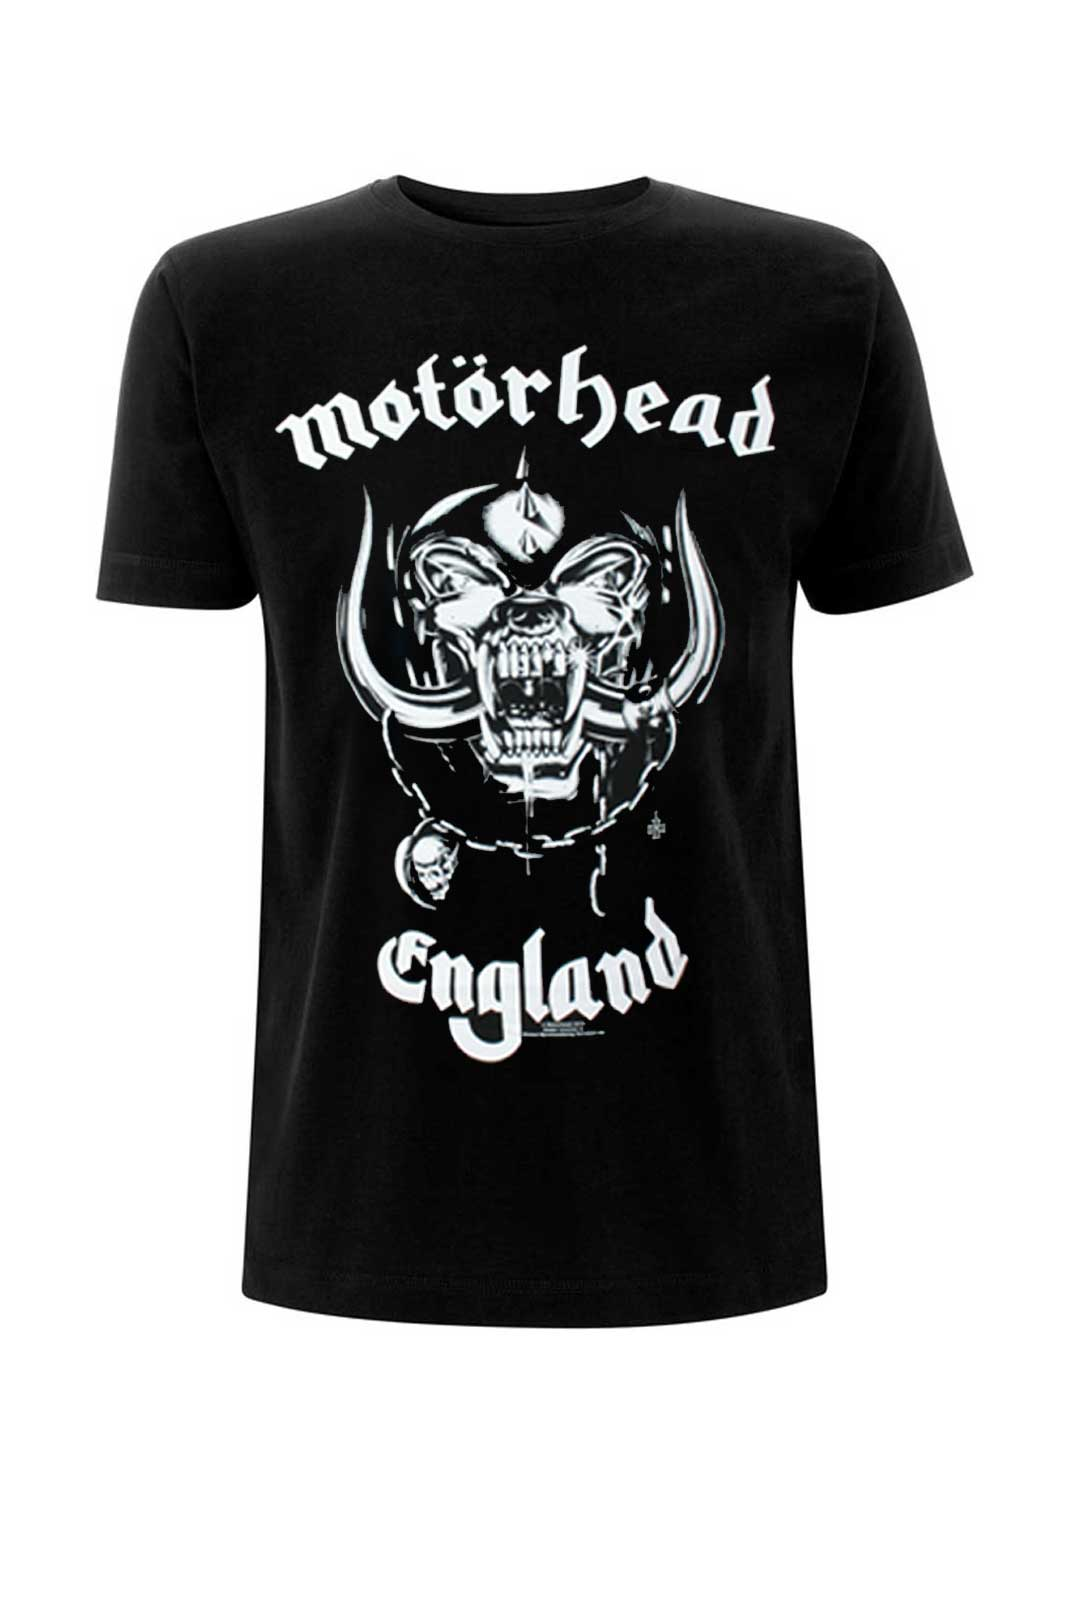 official merchandise motörhead t-shirt england black